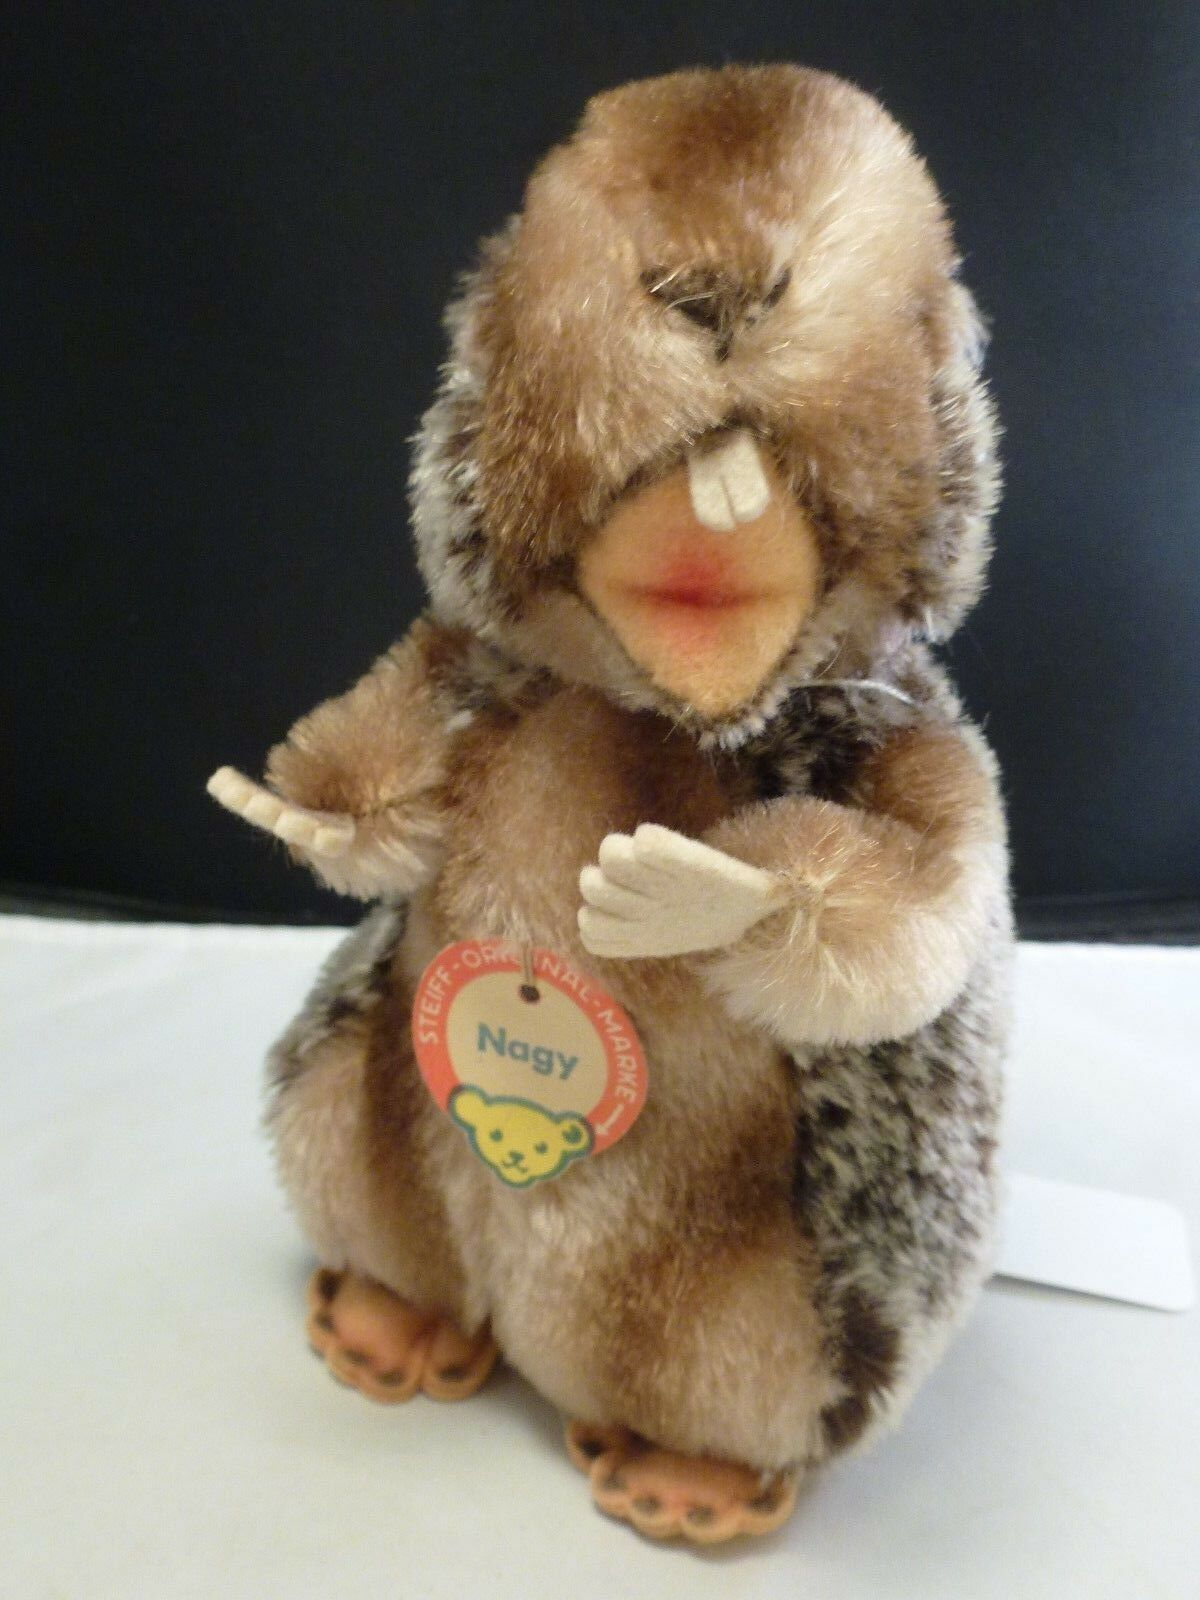 VINTAGE Steiff  Nagy  with  button and tag  1958-64     7  tall     BEAVER